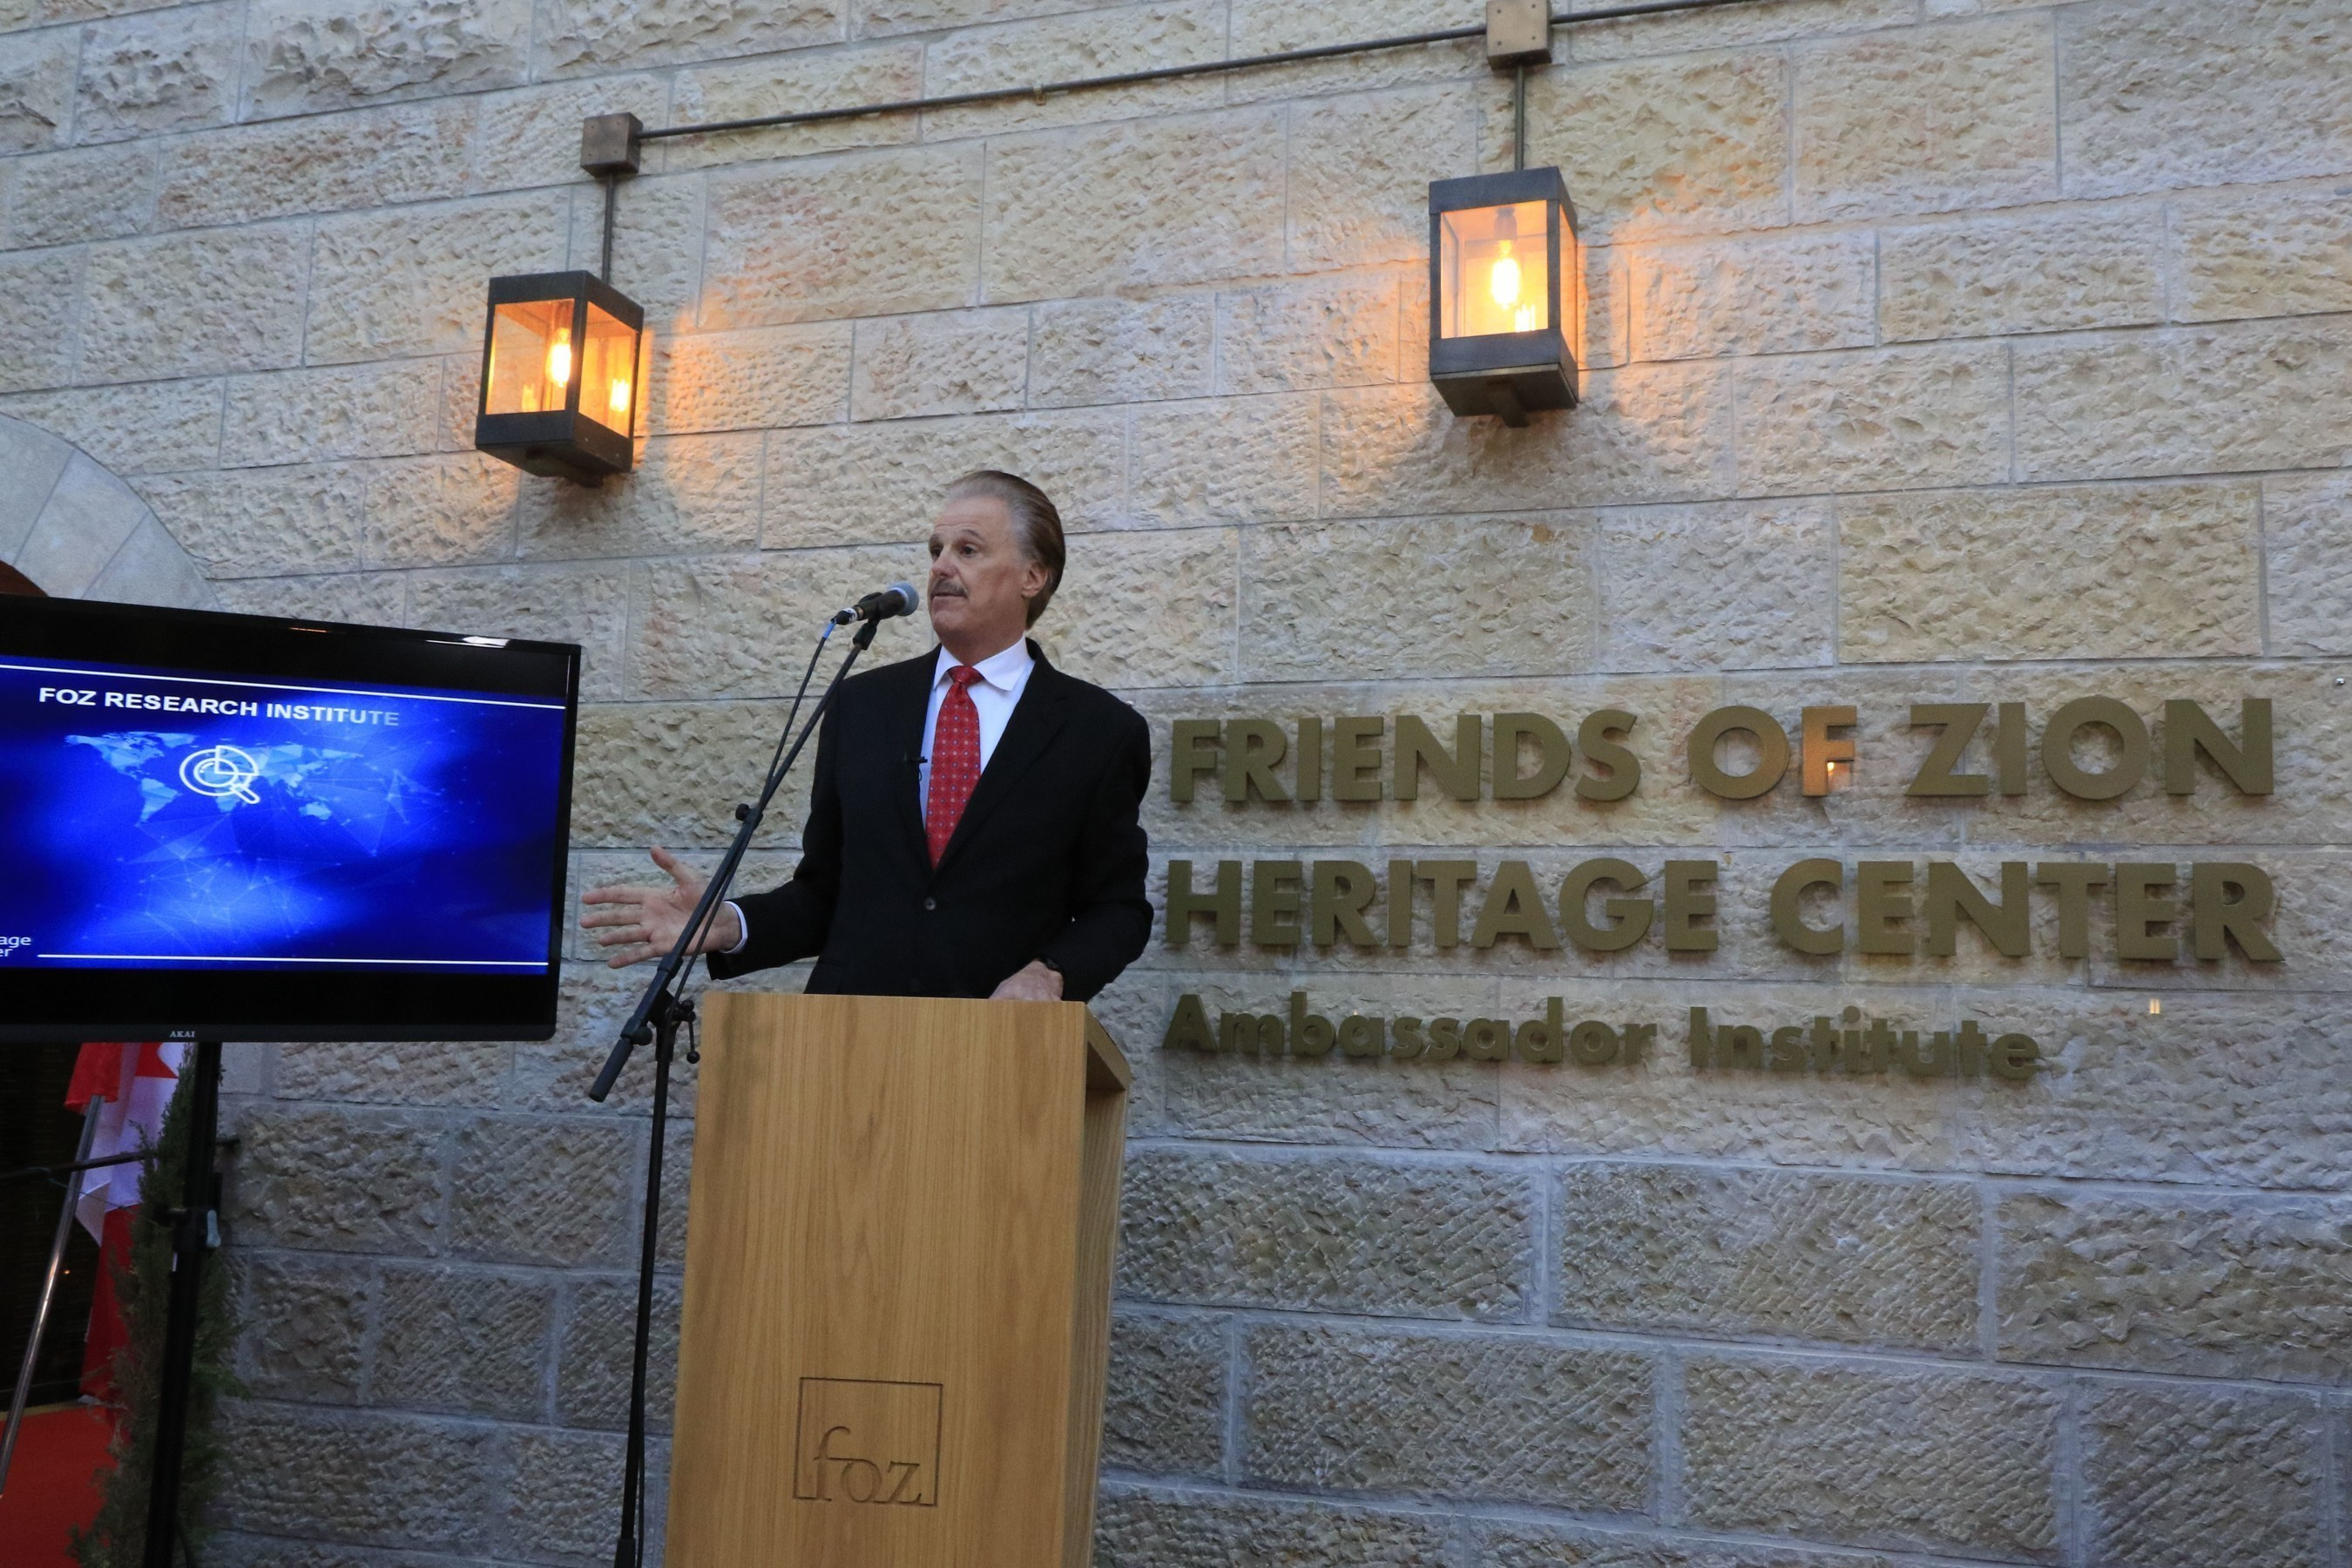 Dr. Mike Evans launches the Friends of Zion Ambassadors Institute, dedicated tocombatingAntisemitismin partnership with the Christian community,in the presence of 80 Diplomats at the Friends of Zion Museum in Jerusalem.